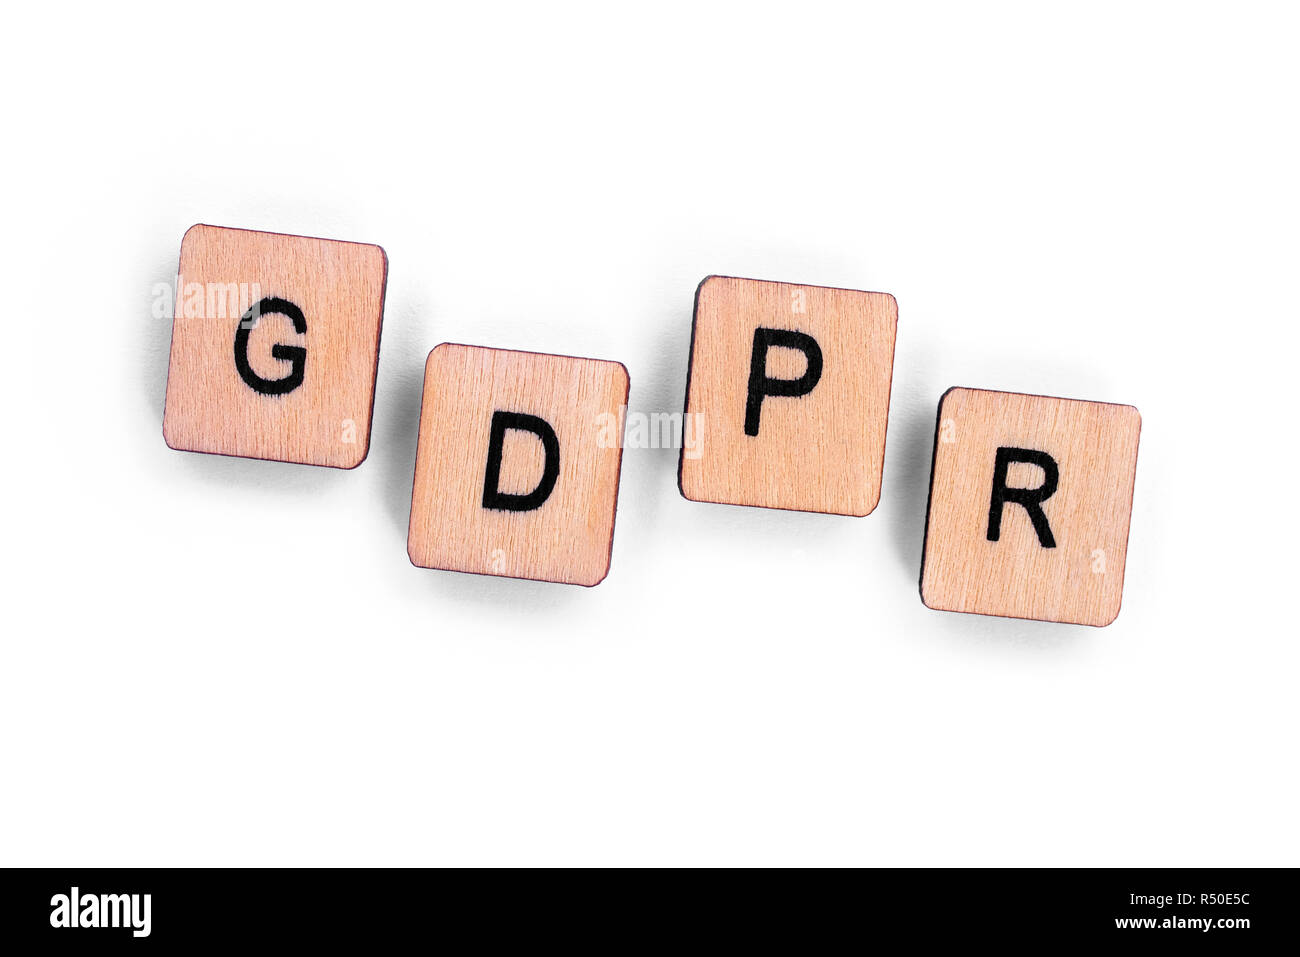 The abbreviation GDPR - General Data Protection Regulation, spelt with wooden letter tiles over a plain white background. Stock Photo